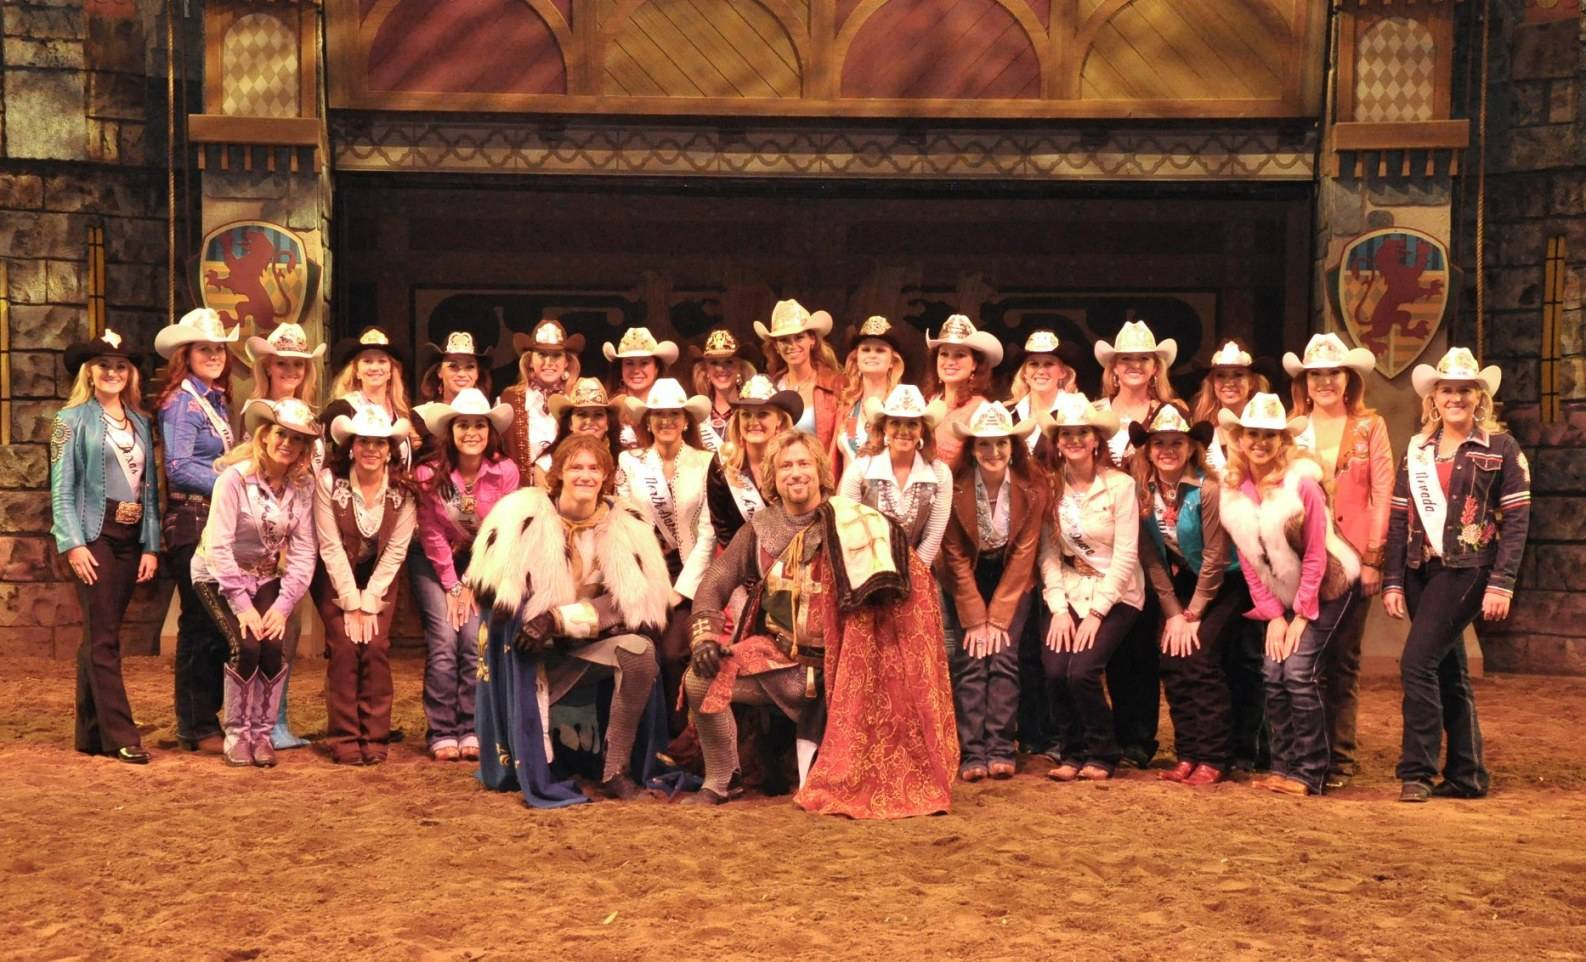 Miss Rodeo America 2014 Contestants at TOK 12.4.13_Low Res